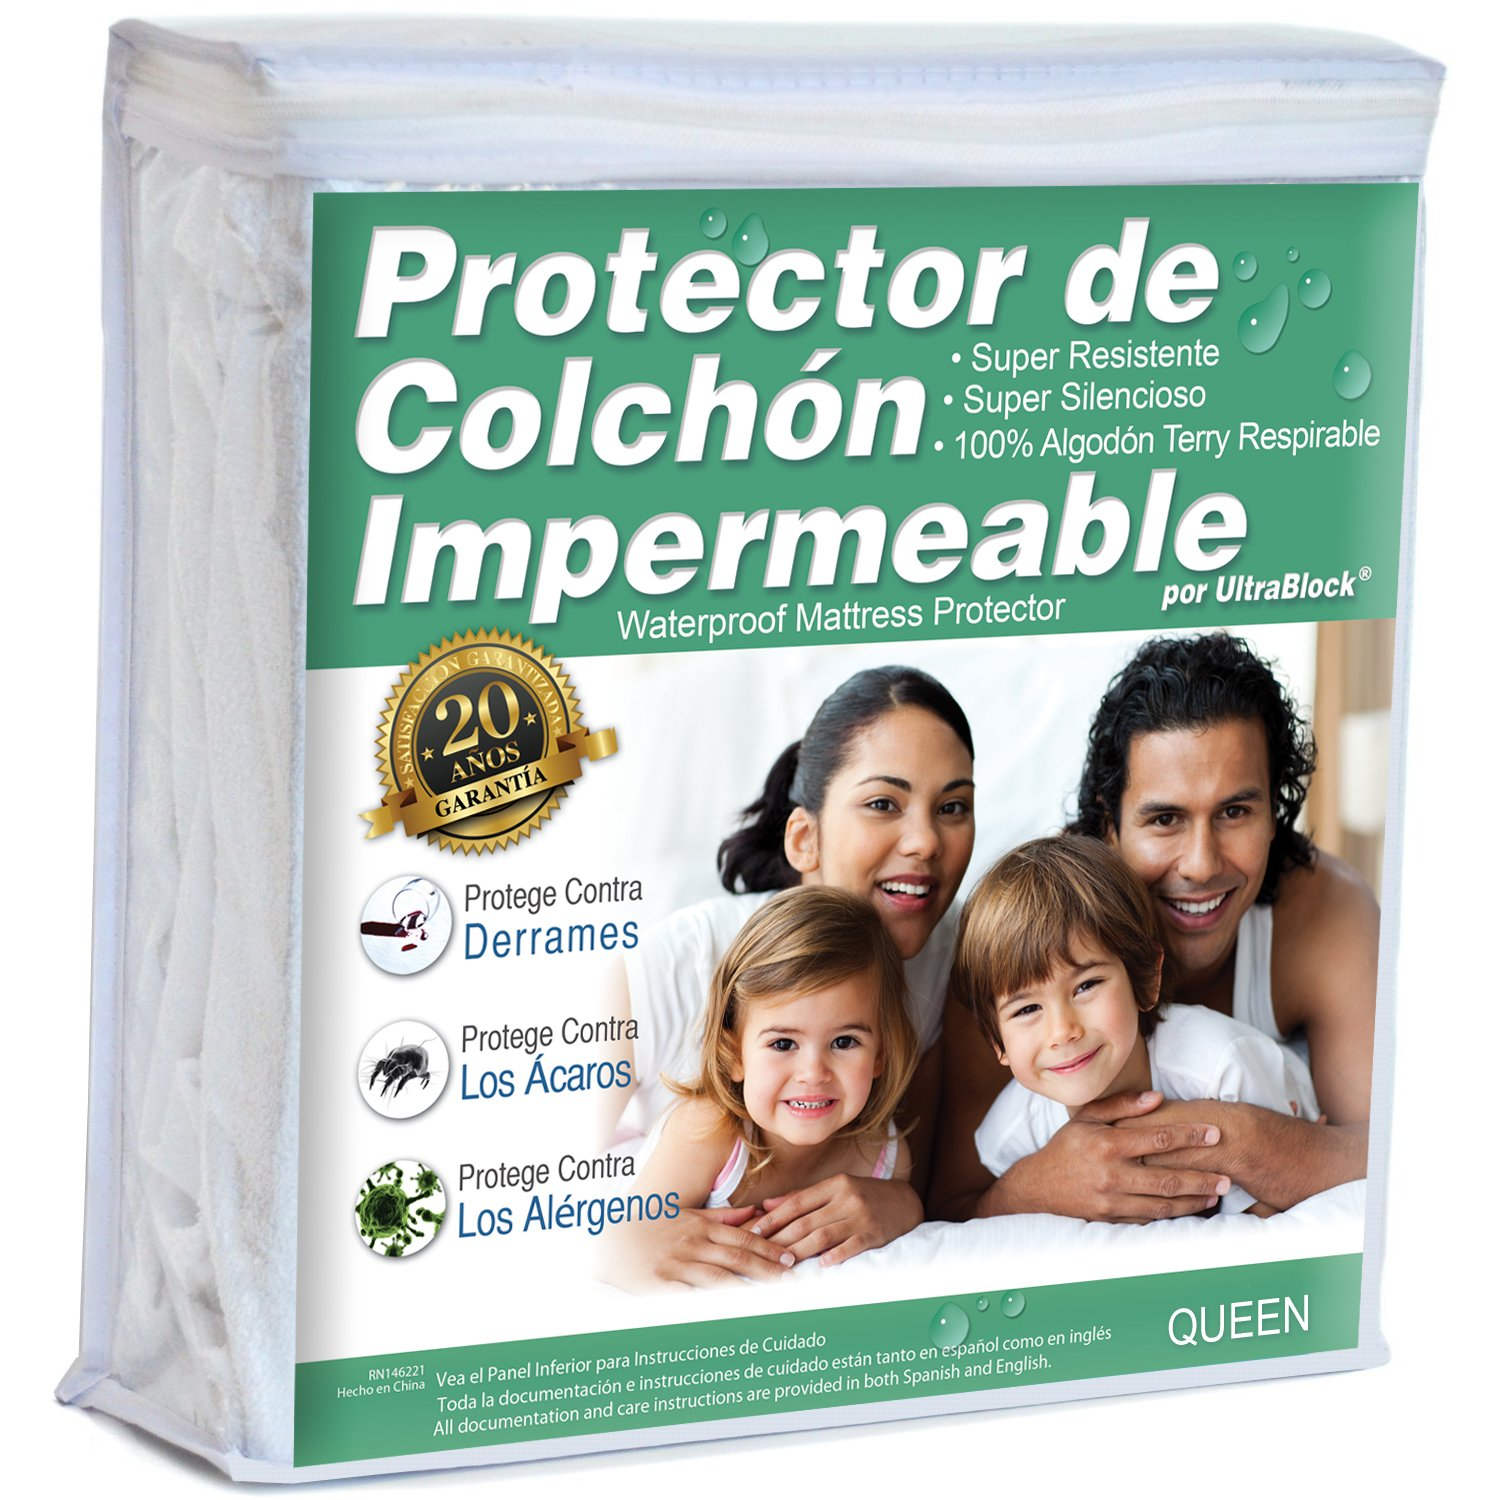 Amazon.com: UltraBlock Protector de colchón impermeable Queen - Funda de Terry de algodón Suave Premium: Home & Kitchen